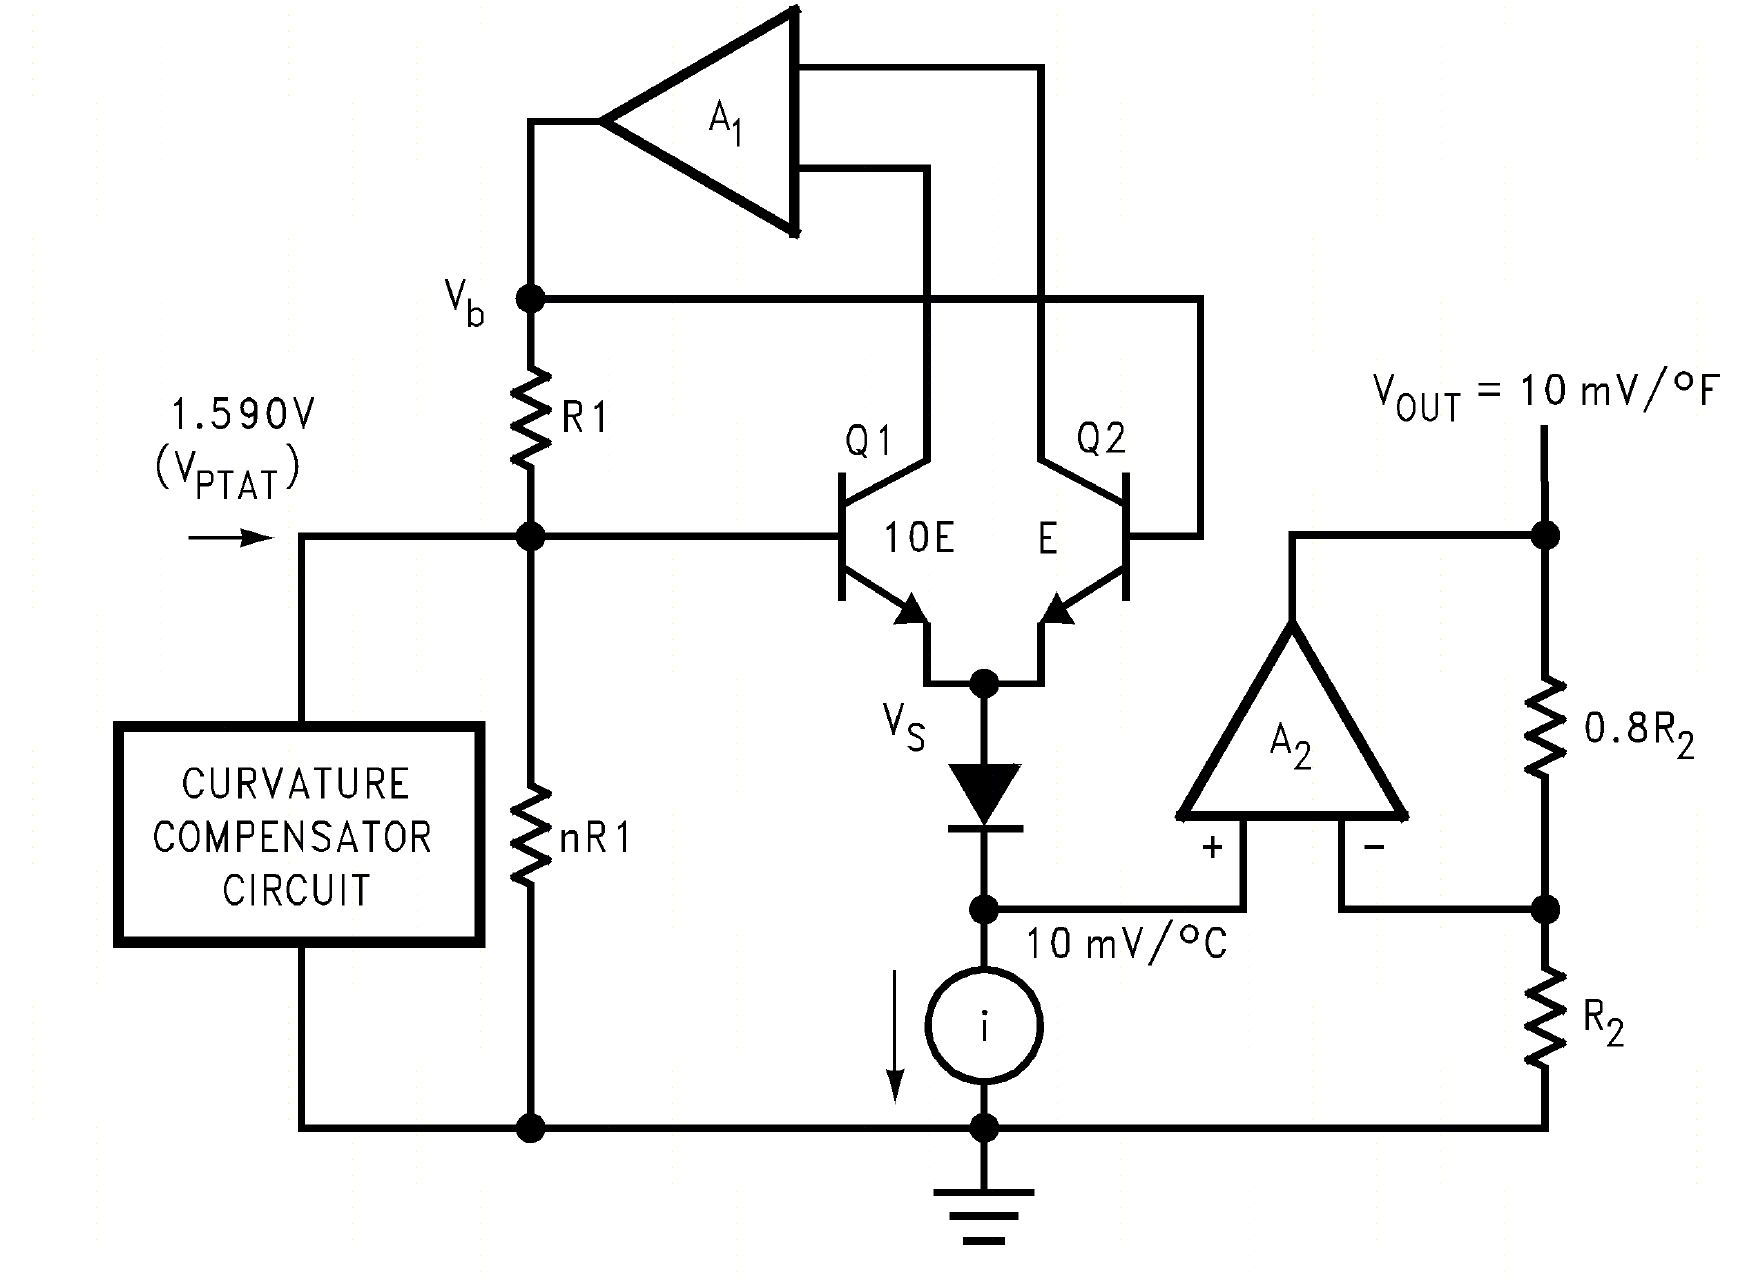 small resolution of explanation regarding this circuit i wish to understand the schematic